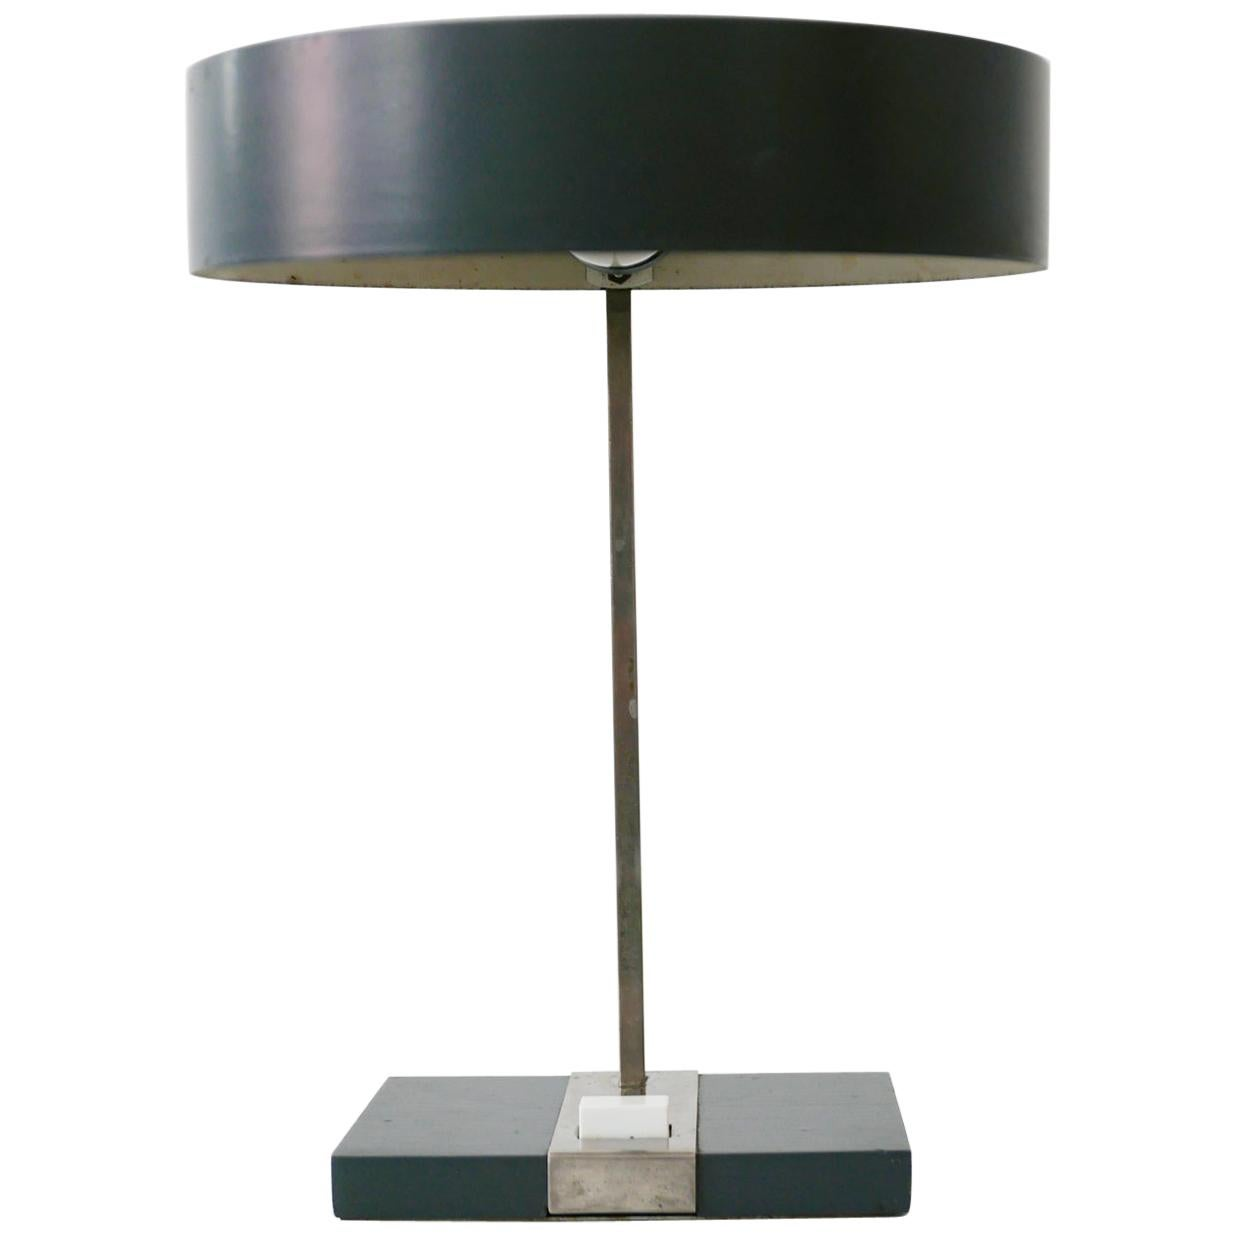 Elegant Mid-Century Modern Table Lamp or Desk Light by Hillebrand, 1960s Germany